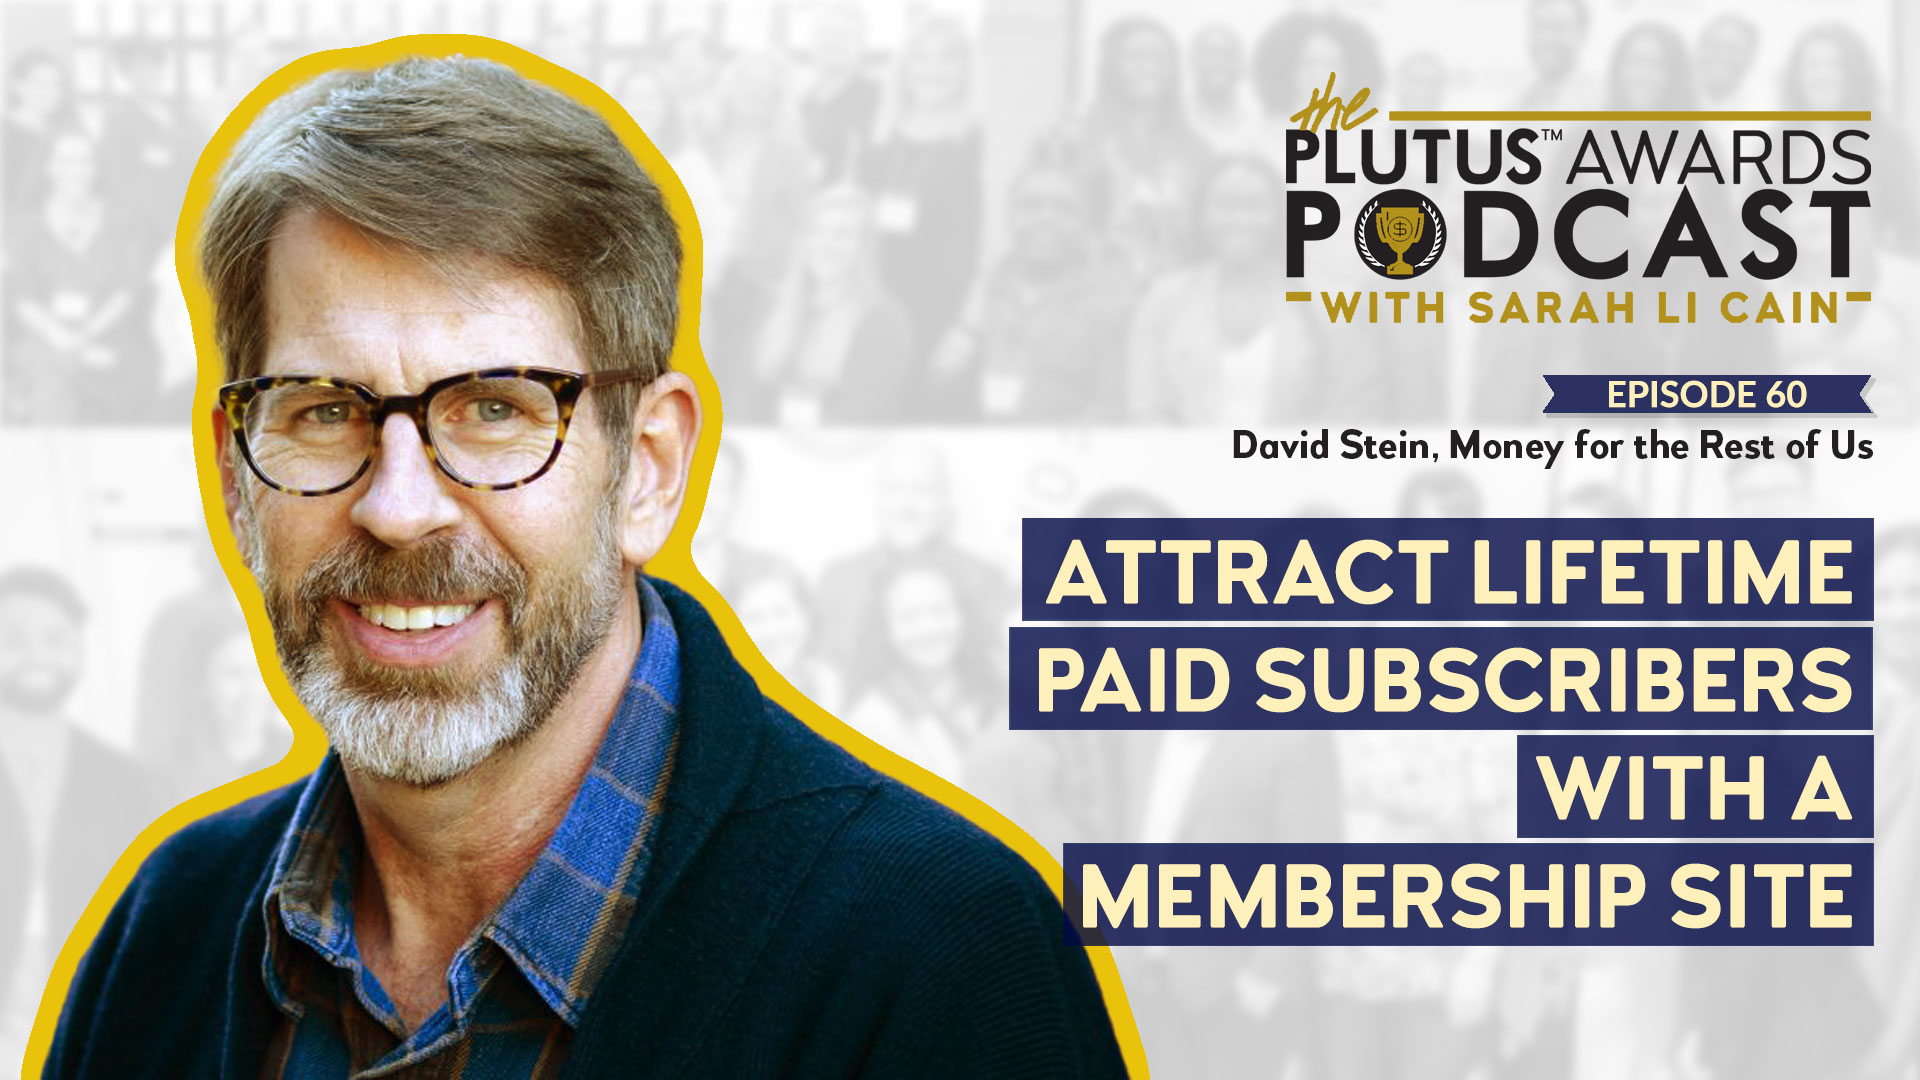 Plutus Awards Podcast - David Stein Featured Image